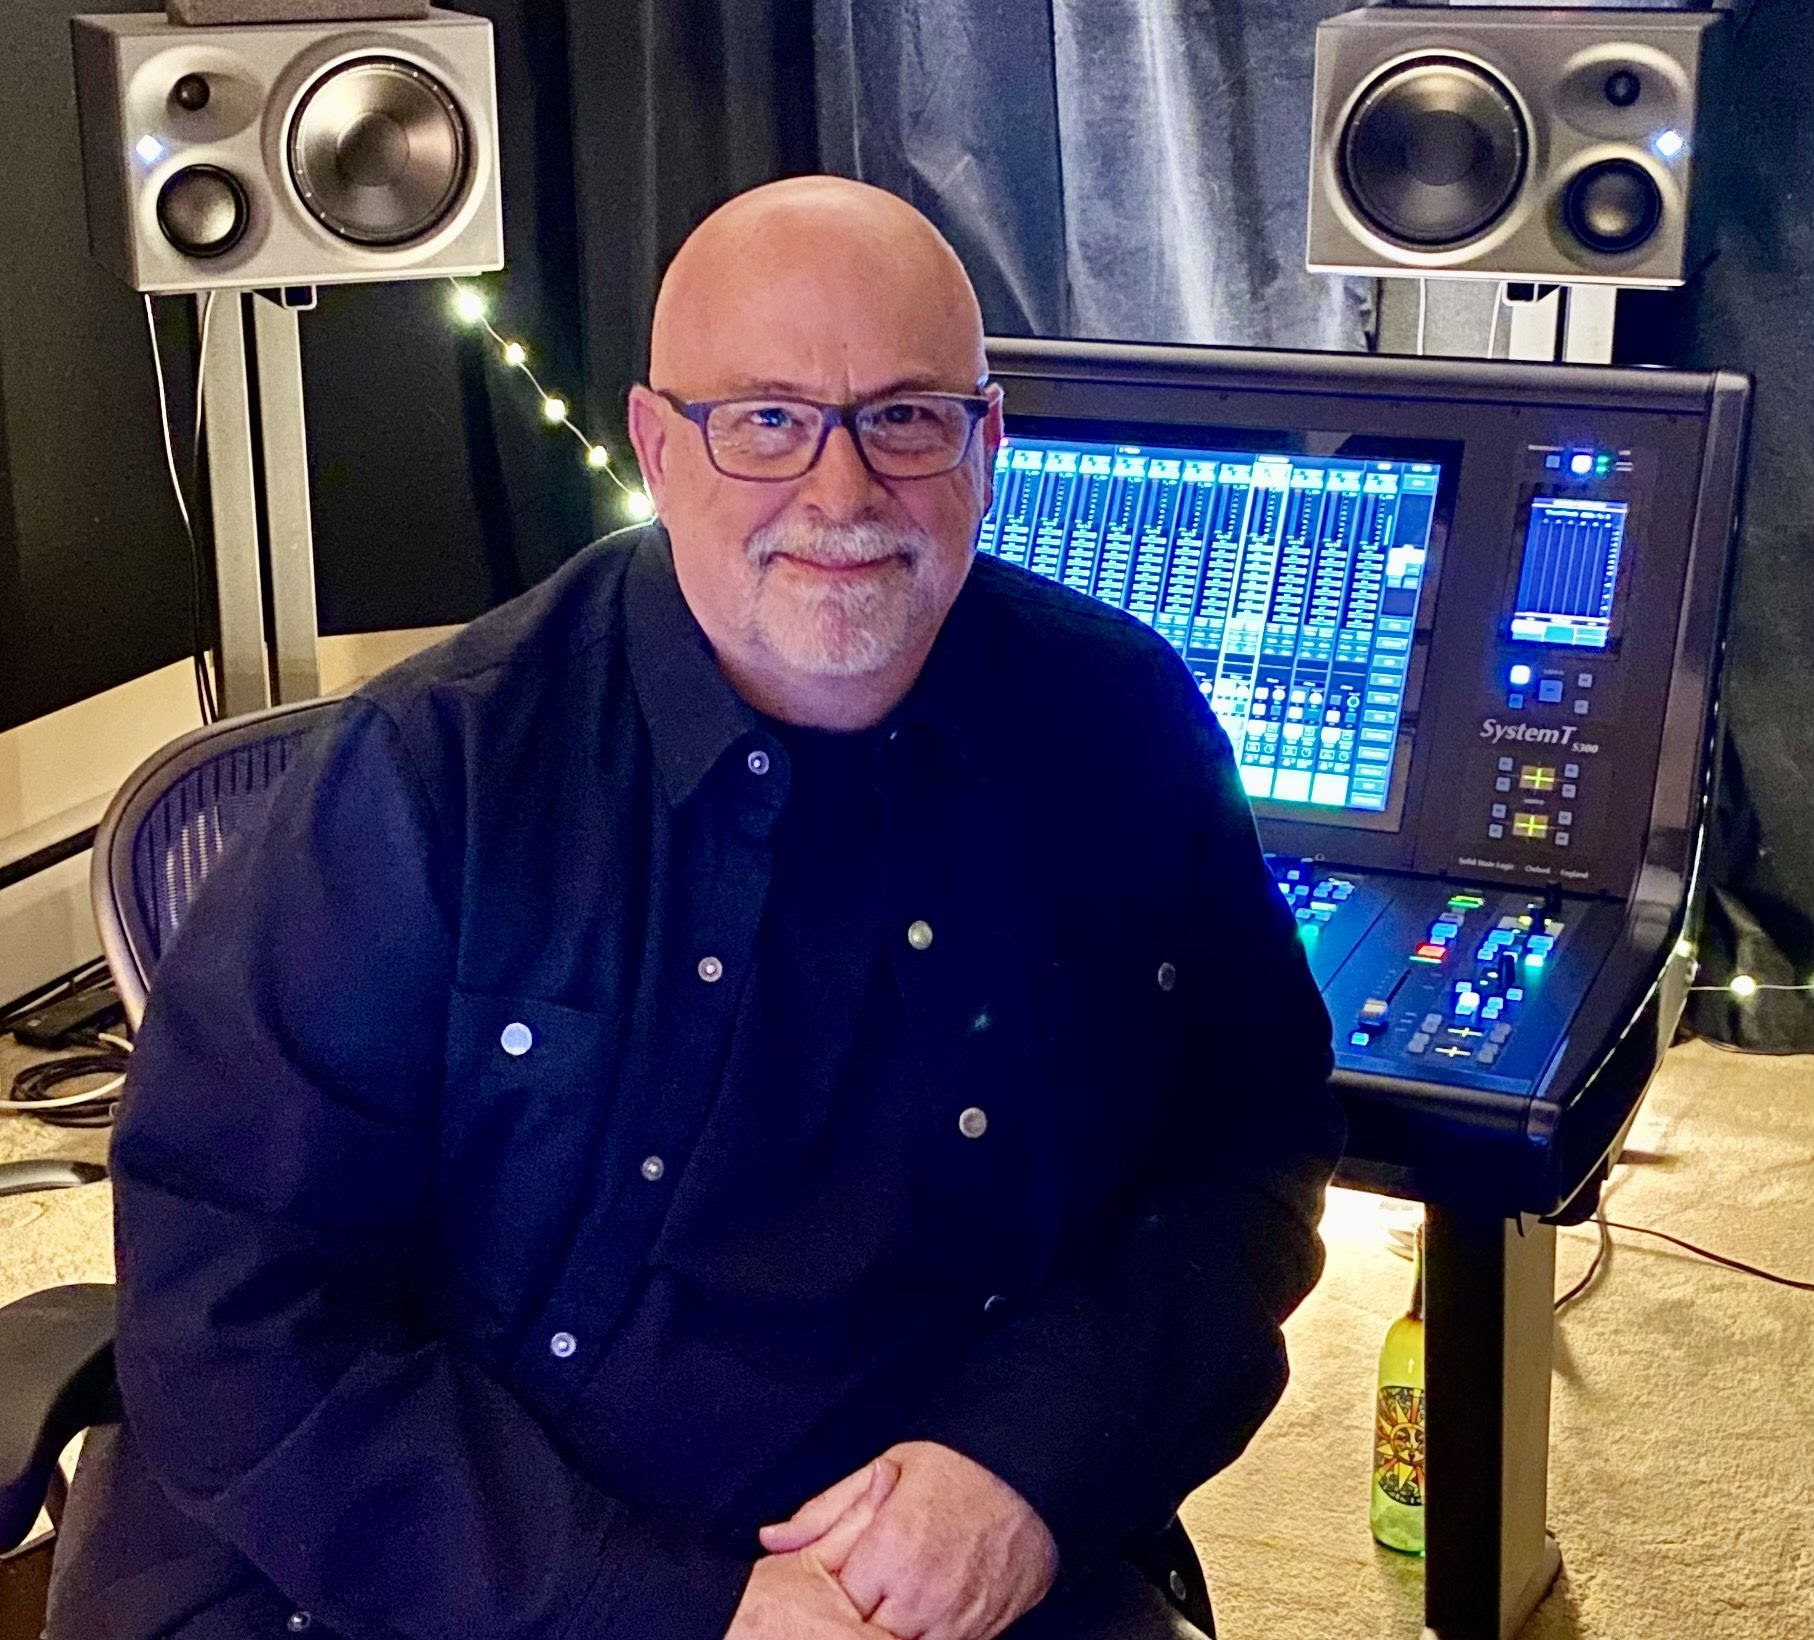 Since the pandemic hit, audio engineer John Harris has been working from home in his new 5.1.4 mix room, exclusively featuring Neumann monitors.